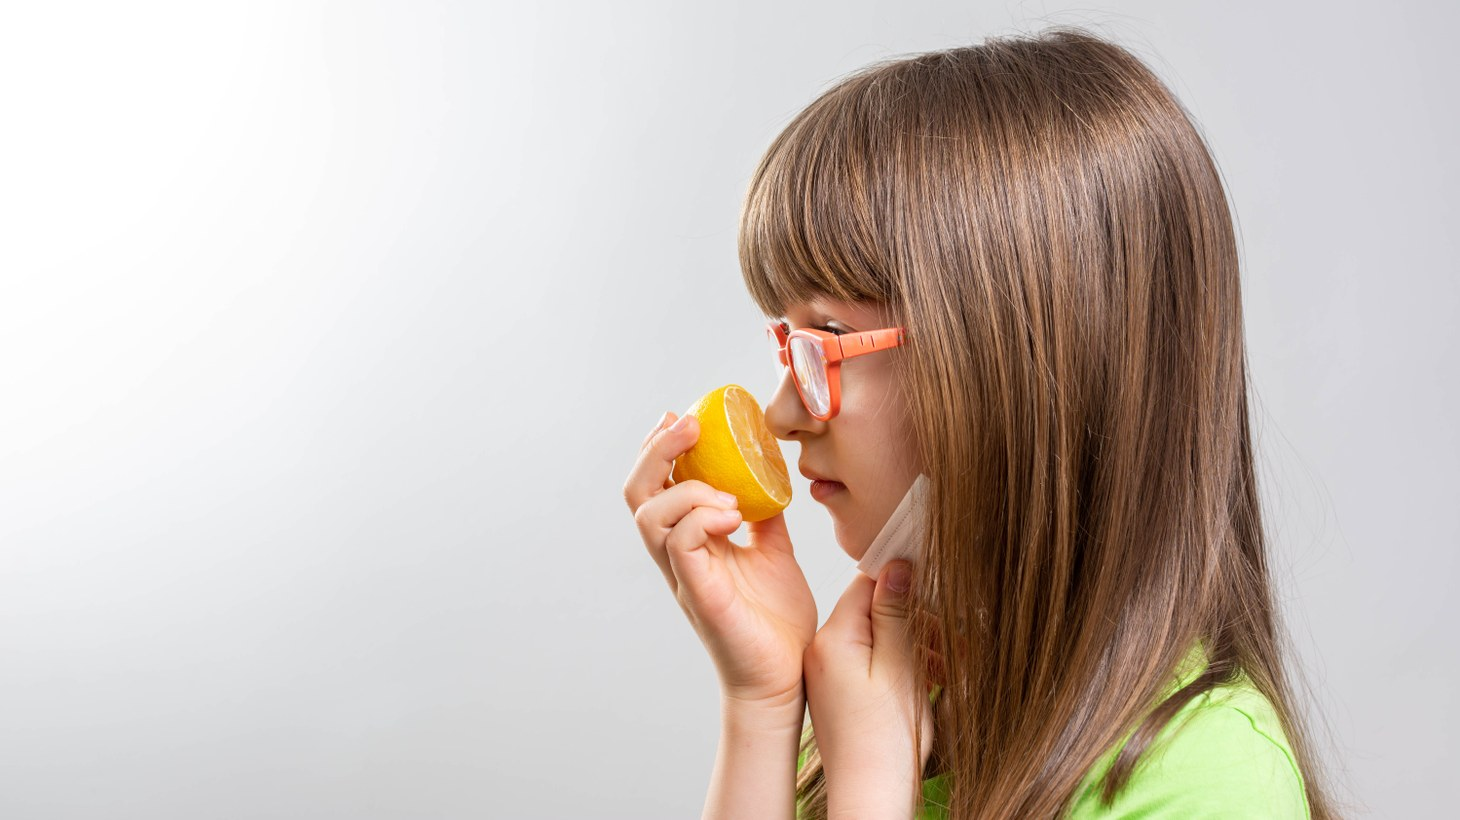 """""""Hundreds of receptors in the nose send signals to the brain that identifies scents. When the sense of smell is lost, the brain can't distinguish between a lime and lemon. They just both taste sour,"""" says Dr. Nancy Rawson."""